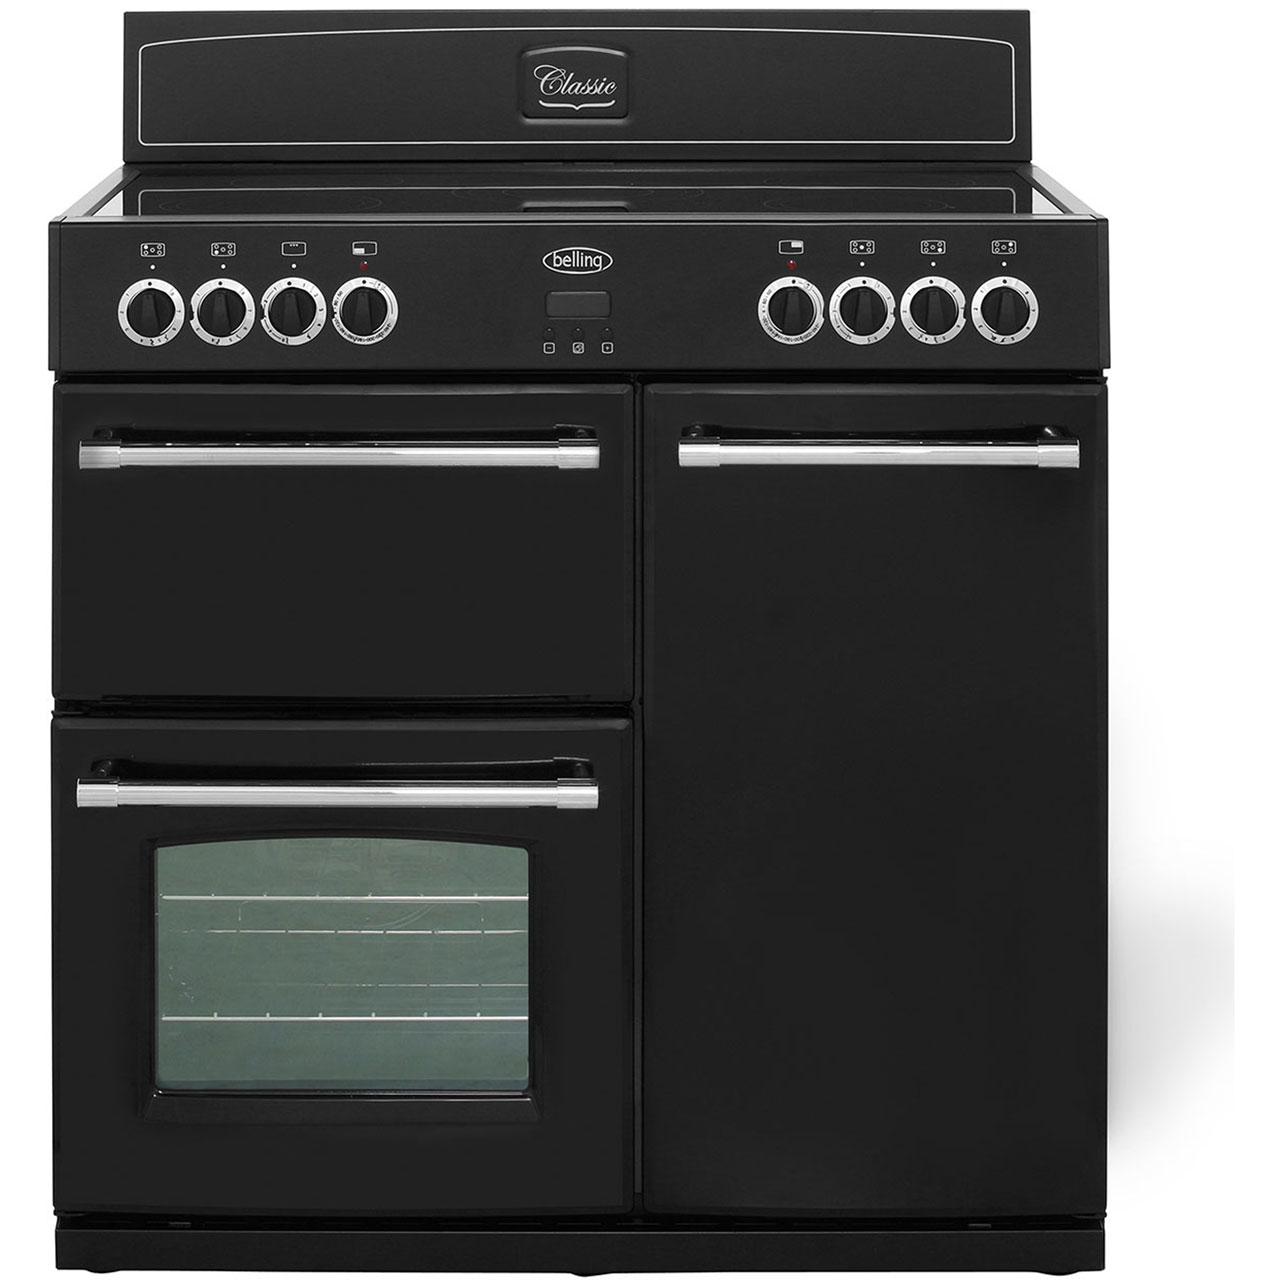 Belling Classic900E 90cm Electric Range Cooker with Ceramic Hob - Black